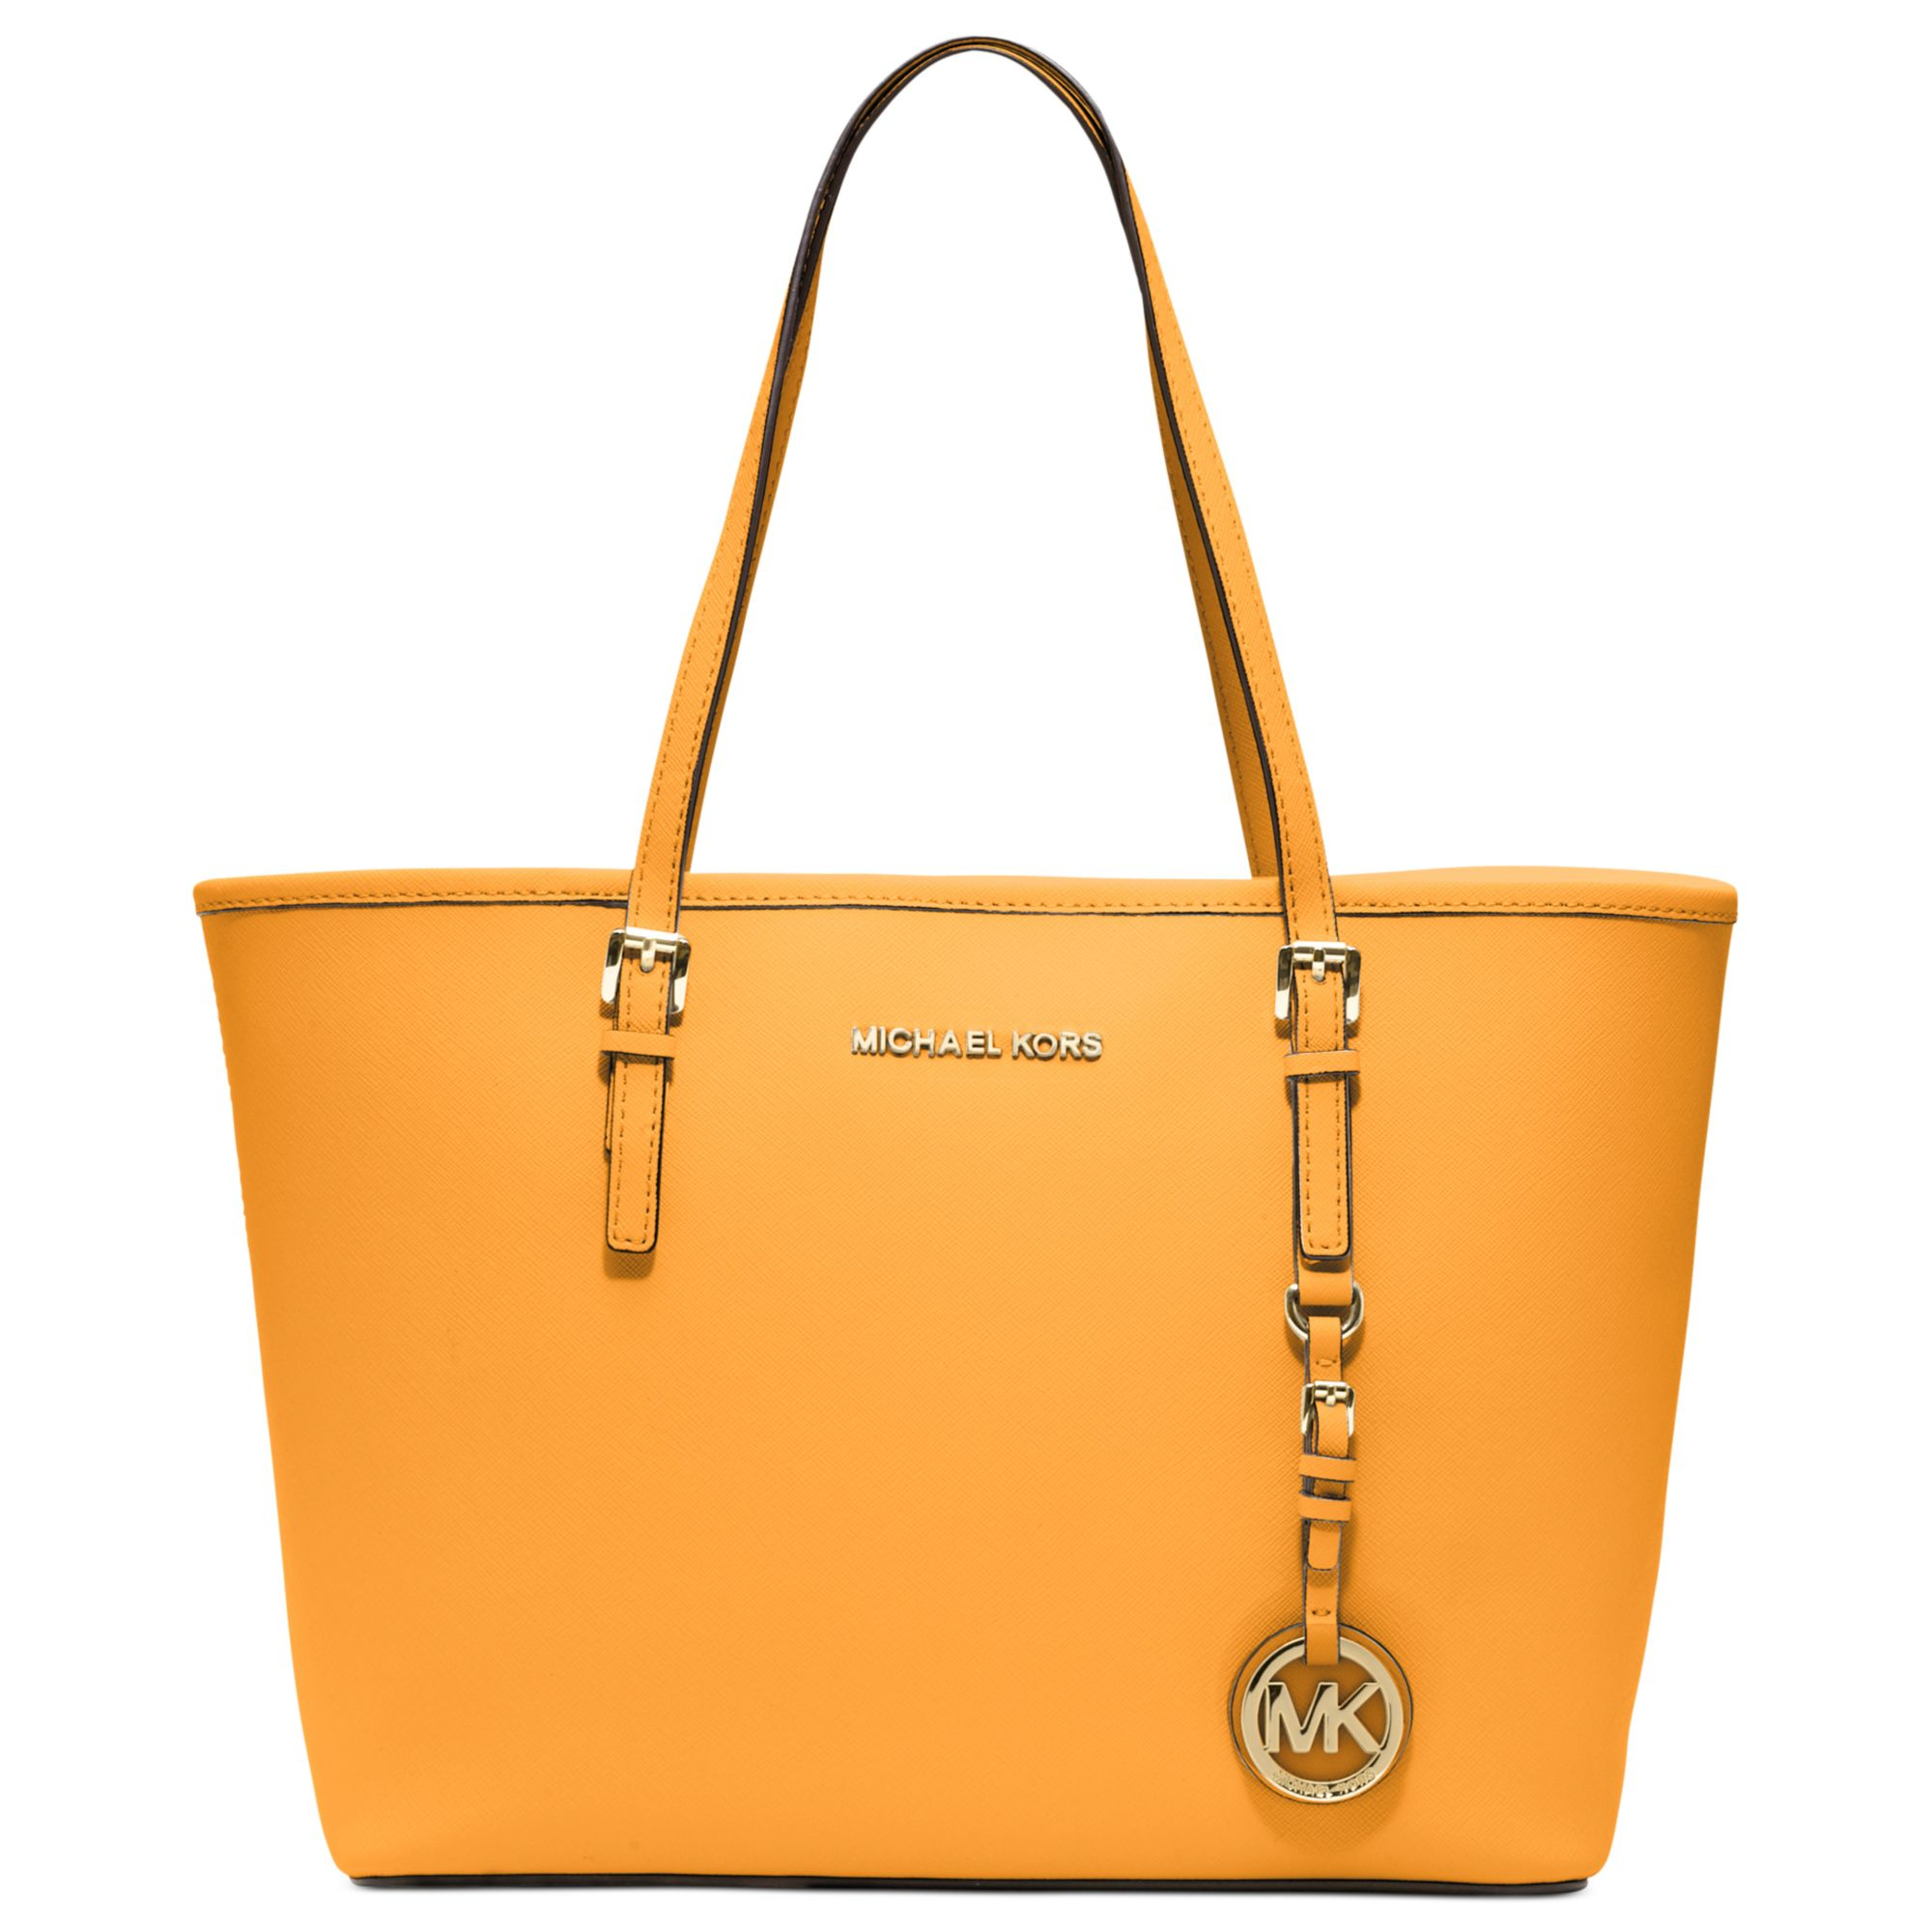 3be08fc763a2 Michael by Michael Kors Bedford Large Shoulder Tote Lyst - Michael Kors  Michael Jet Set Travel Small Tote in Ora ...